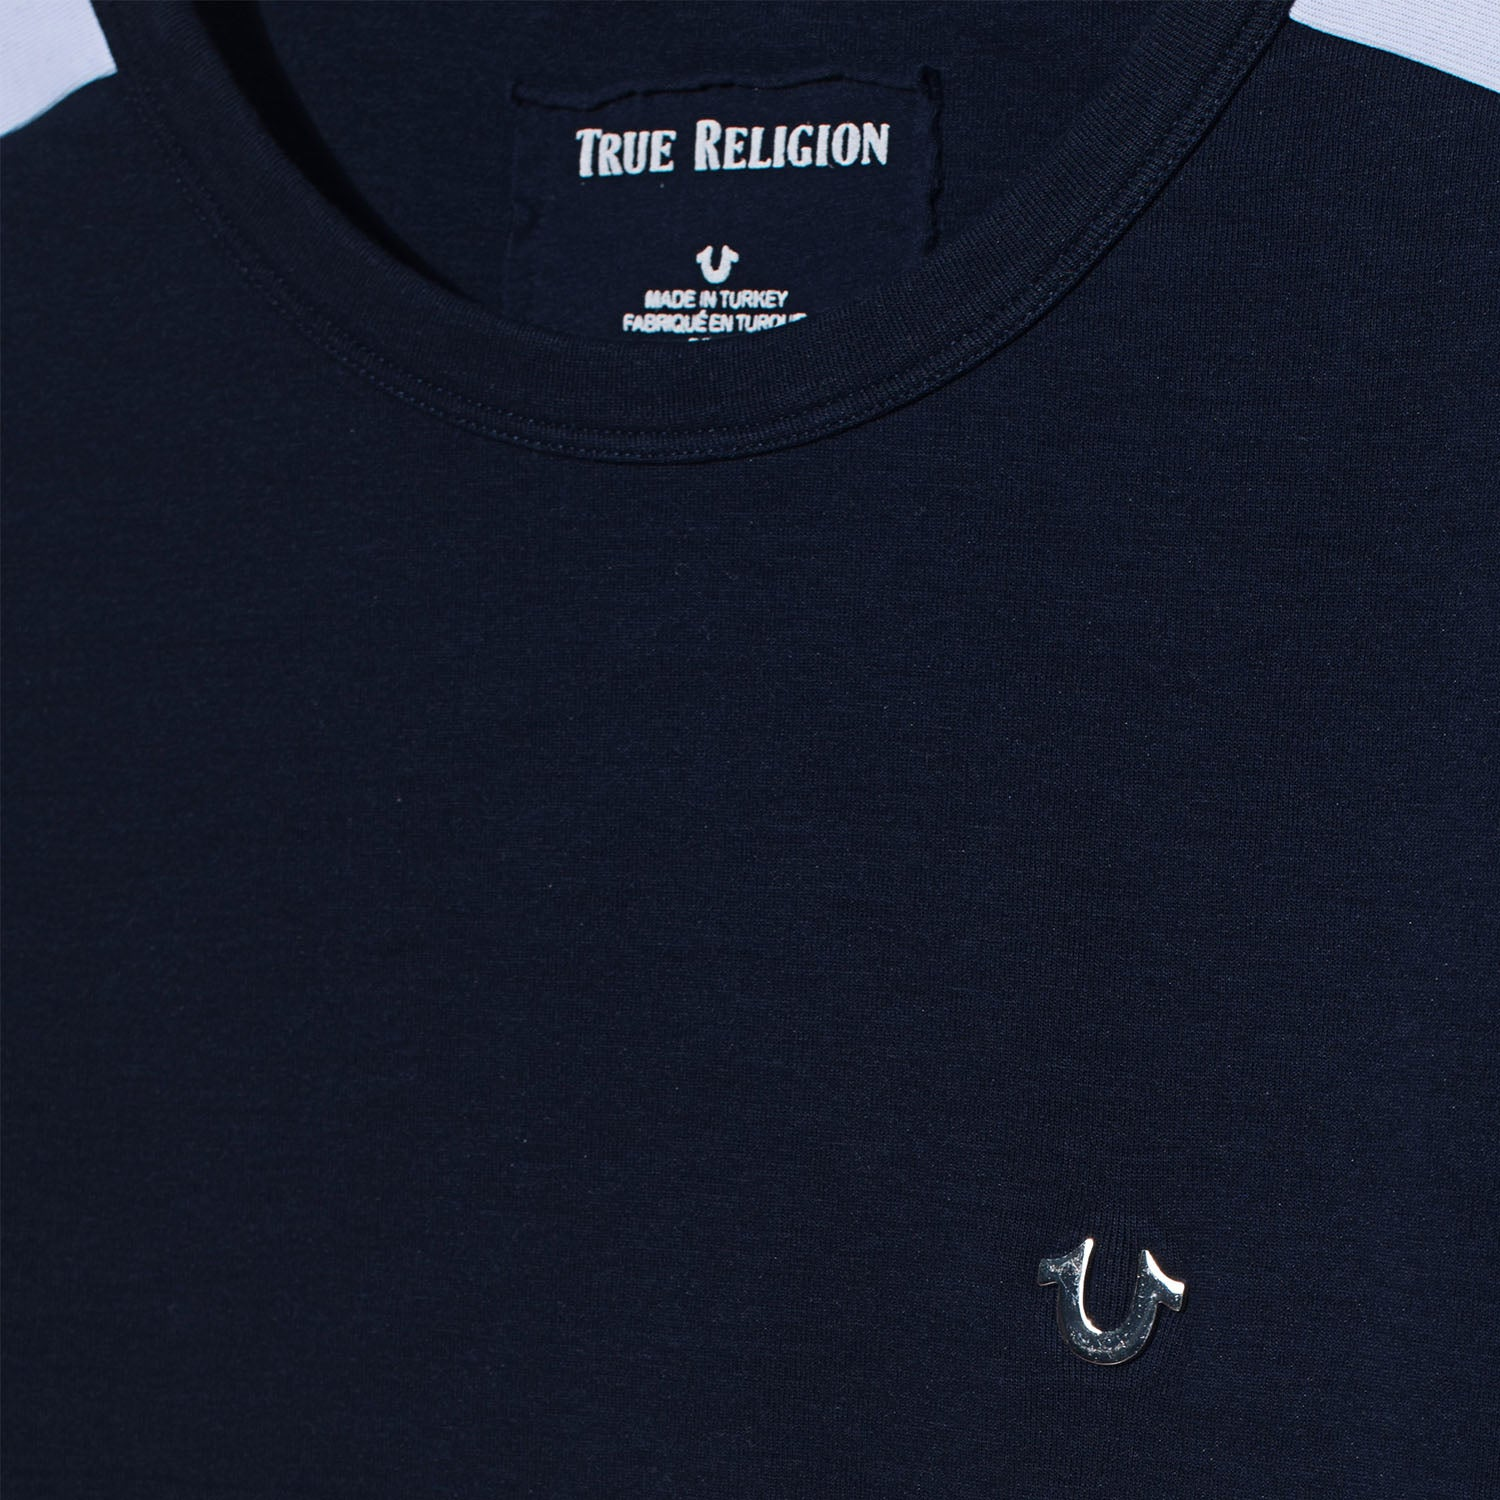 True Religion Blue Contrast Sweatshirt